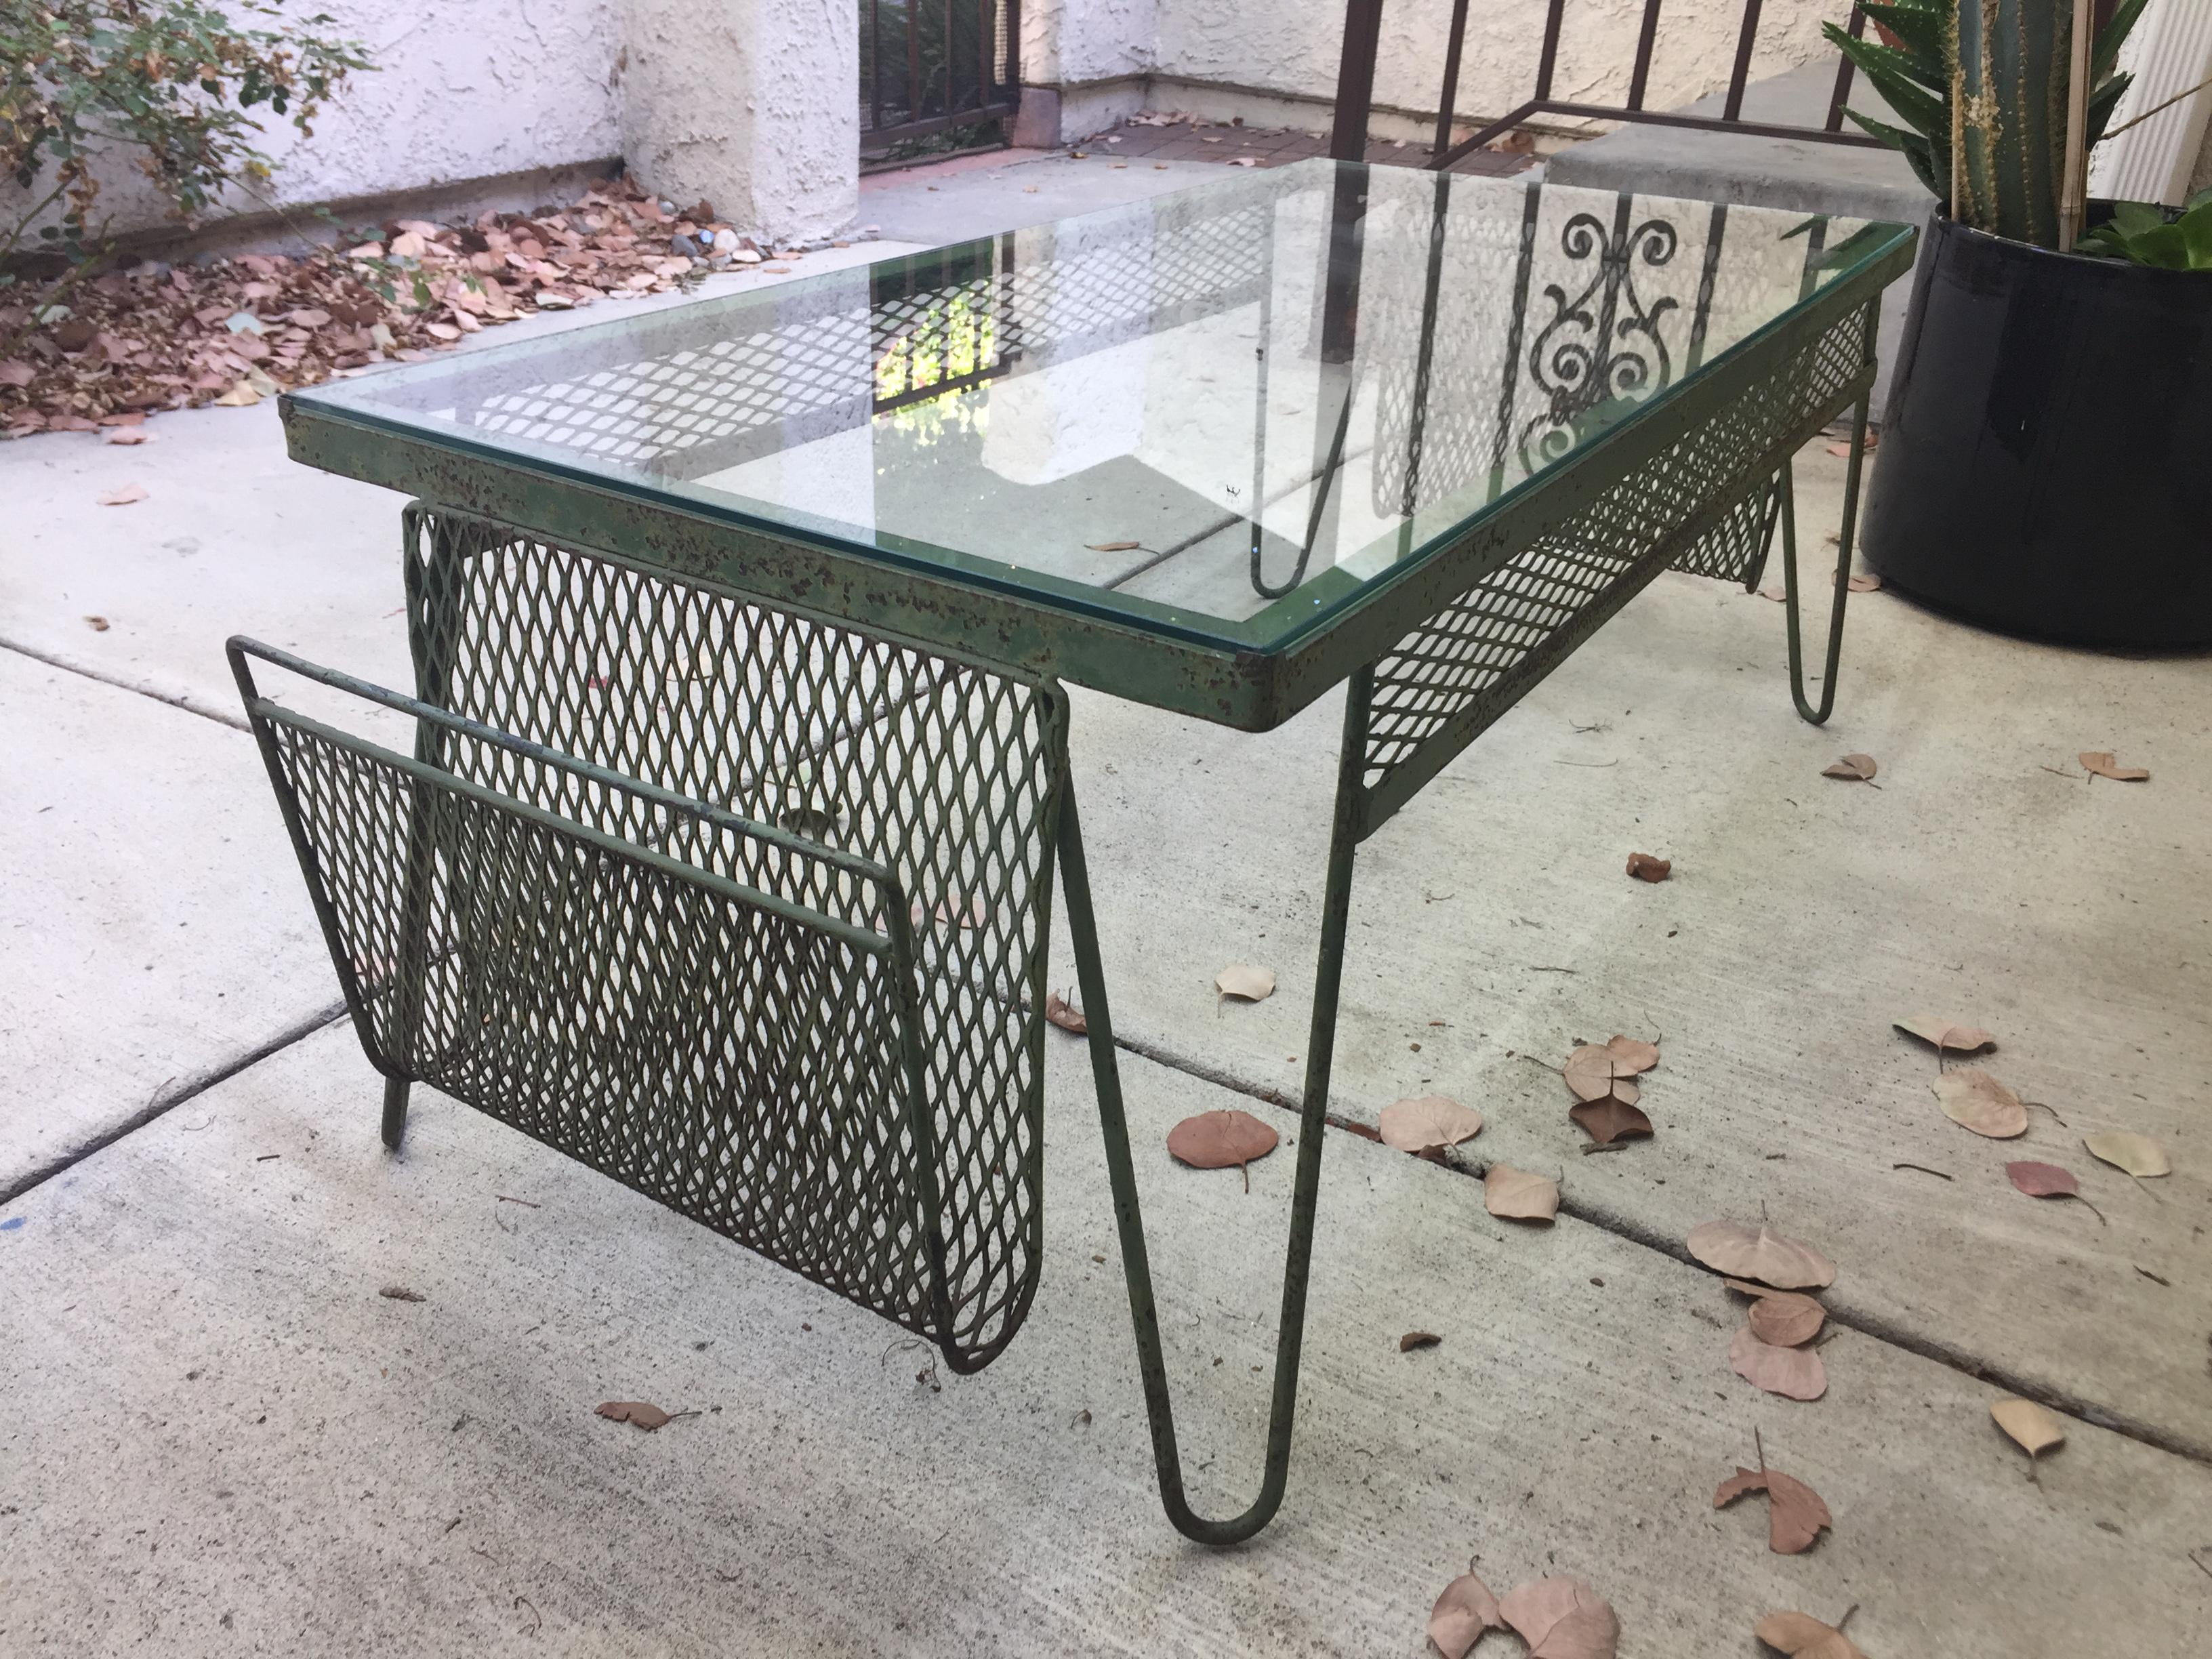 In Wonderful Vintage Condition With A Lovely Patina. Age Appropriate Wear.  Sturdy, Glass